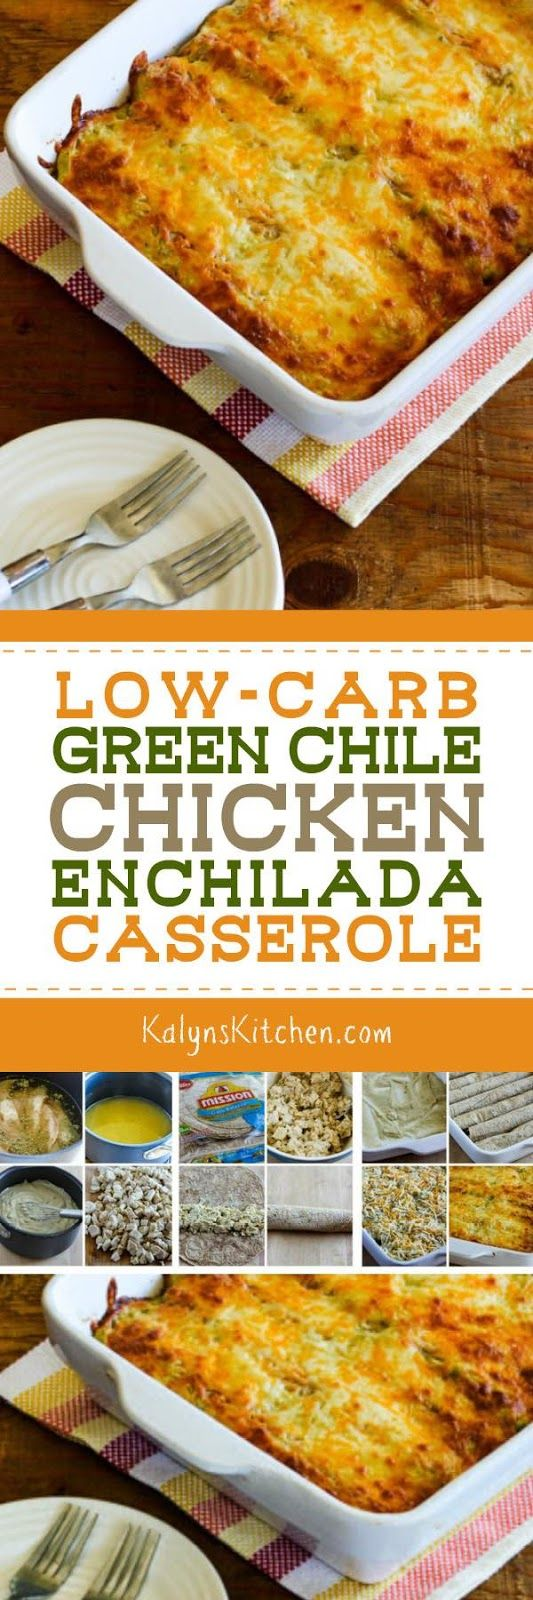 1000+ images about Low carb on Pinterest | Low carb chocolate, George ...